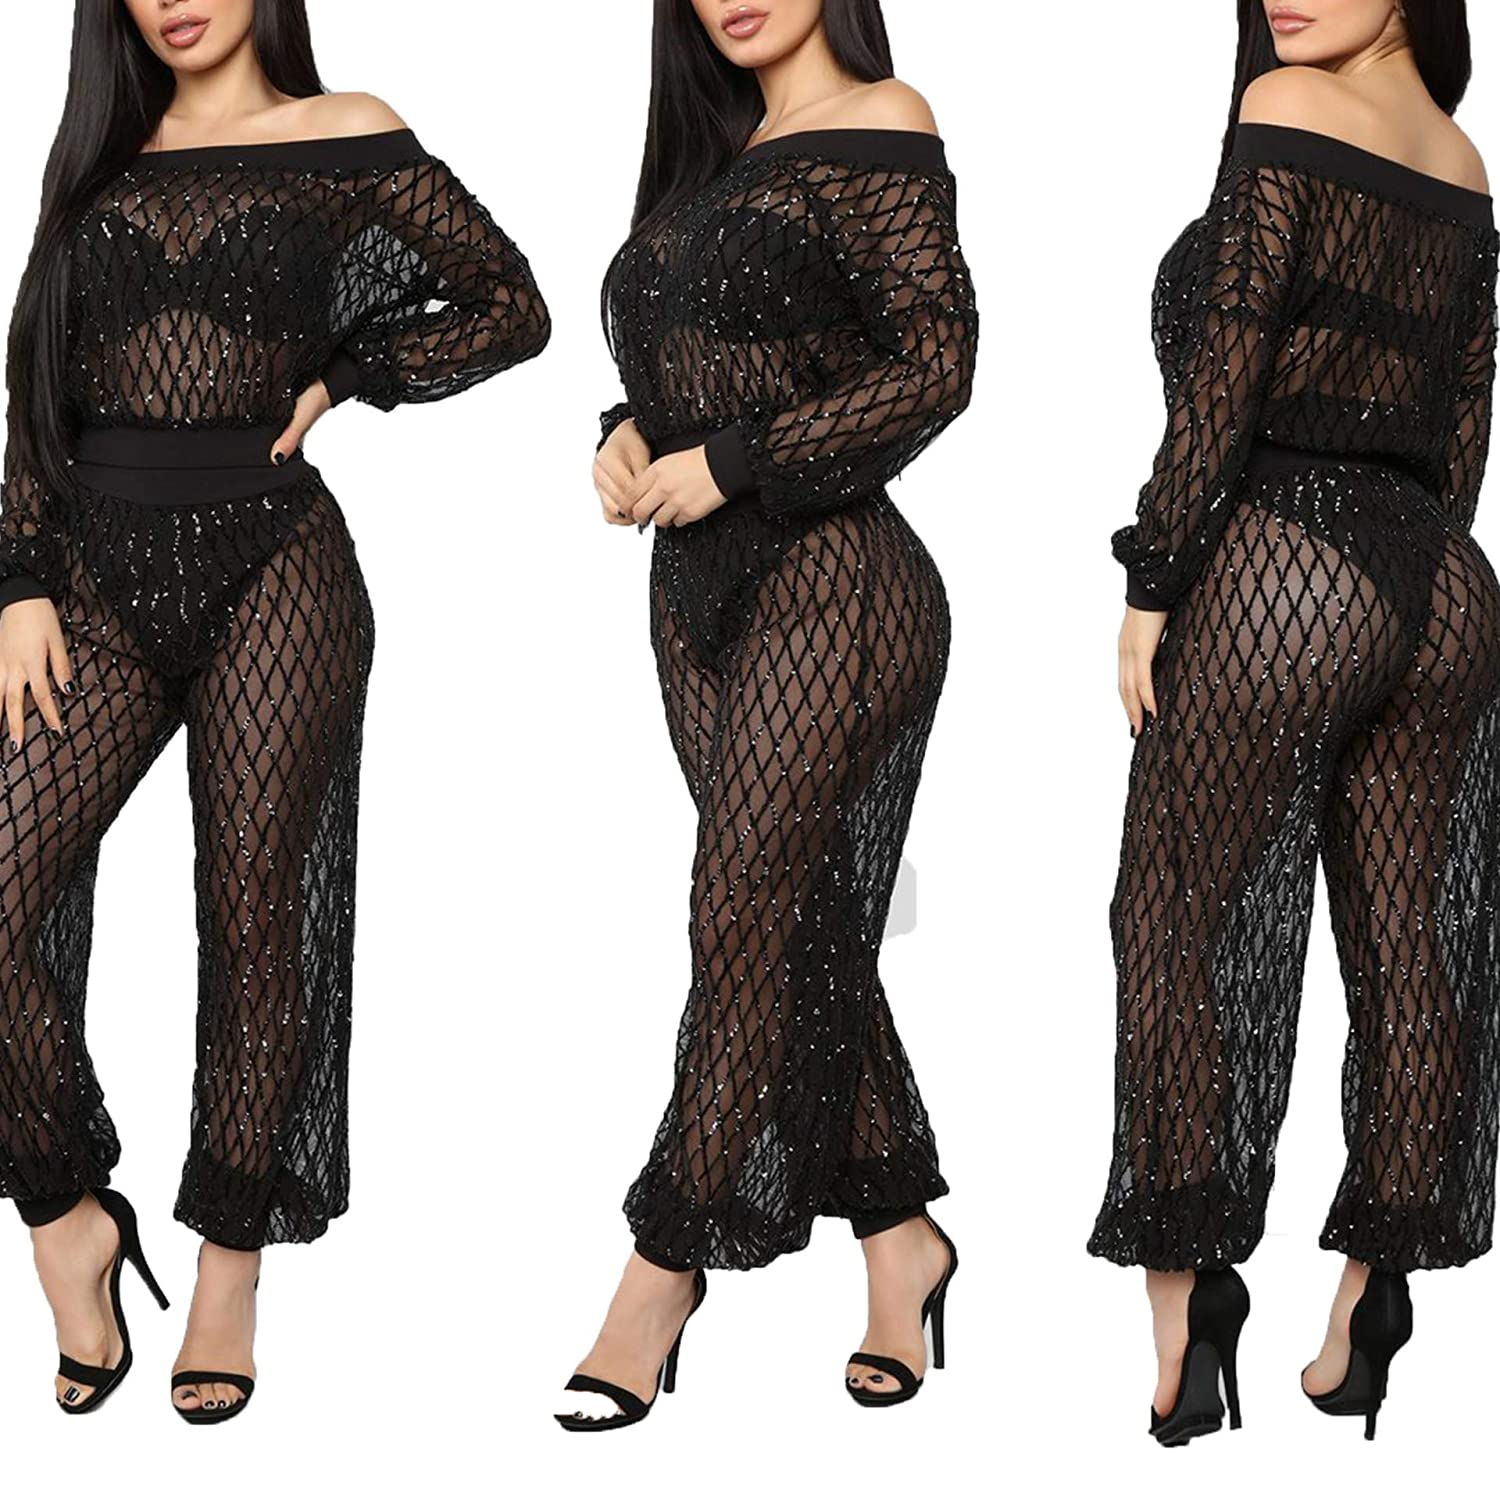 ce4485f0 Amazon.com: IyMoo Womens 2 Piece Sequins Outfits-Off Shoulder See Through  Mesh Long Sleeve Jumpsuits Clubwear: Clothing